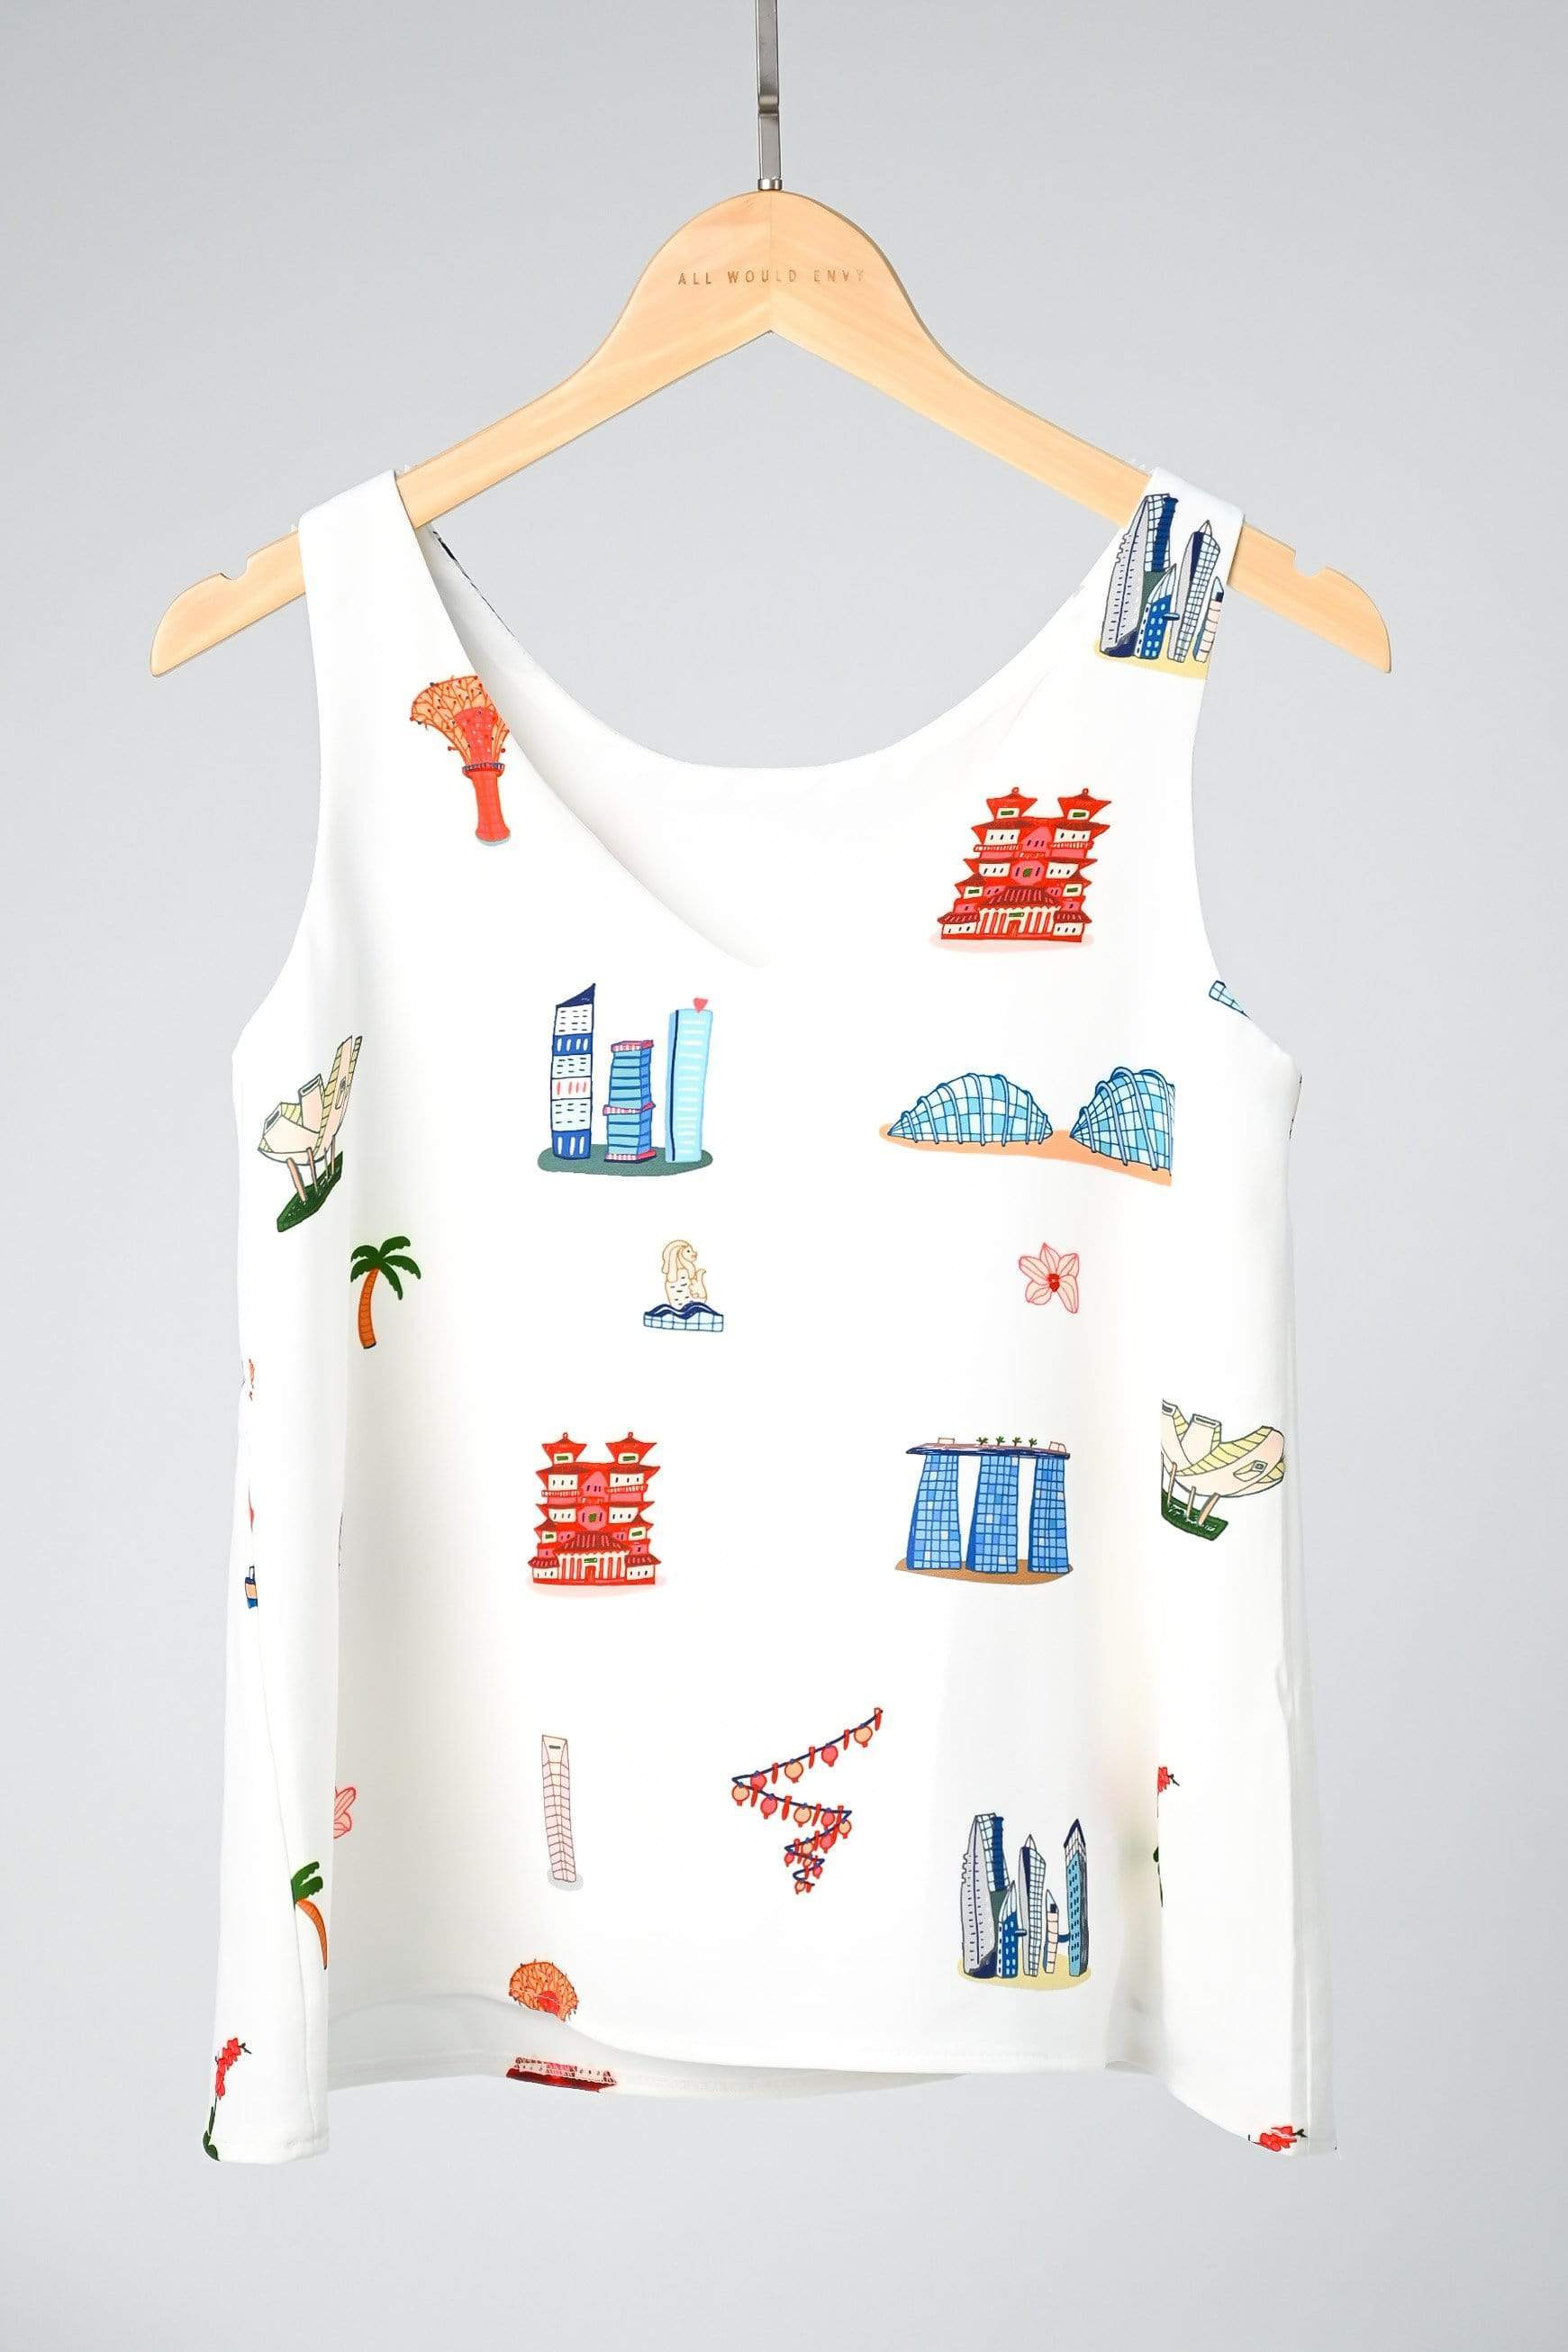 THIS IS HOME TWO-WAY TANK TOP